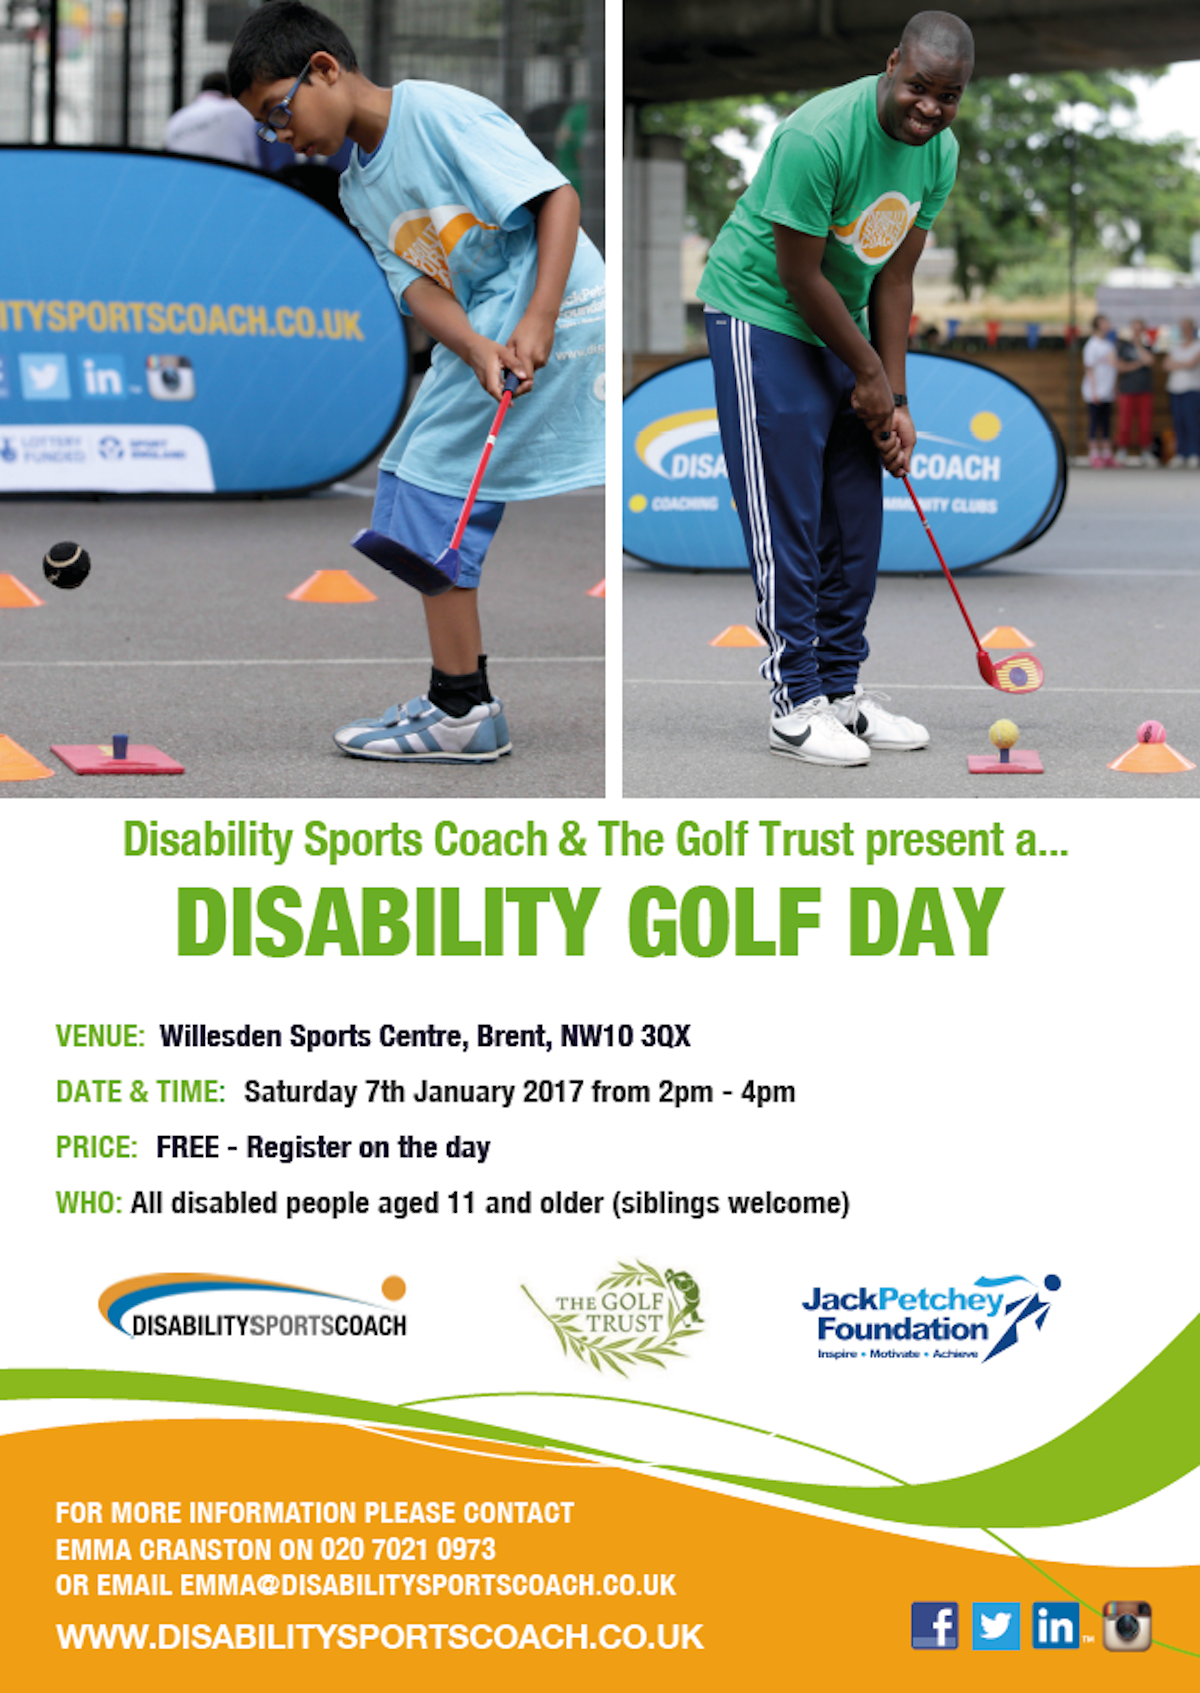 Disability Golf Day - Saturday 7th January 2017 - The Golf Trust